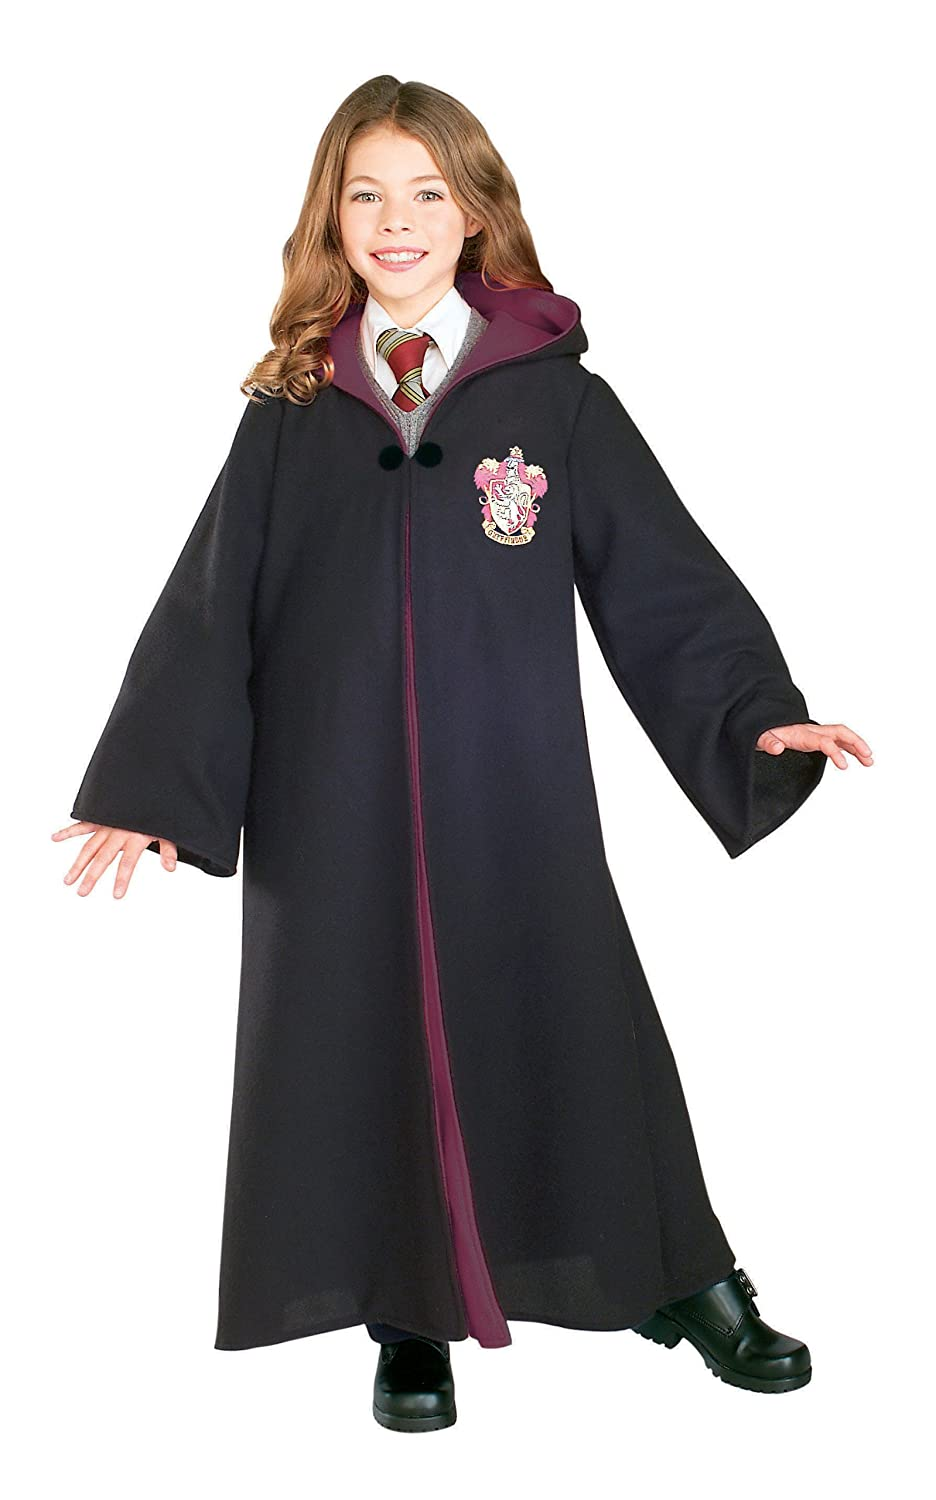 Rubies Costume Harry Potter Childu0027s Costume Deluxe Harry Potter Gryffindor Robe Medium (size 8-10) Boys - Amazon Canada  sc 1 st  Amazon.ca & Rubies Costume Harry Potter Childu0027s Costume Deluxe Harry Potter ...